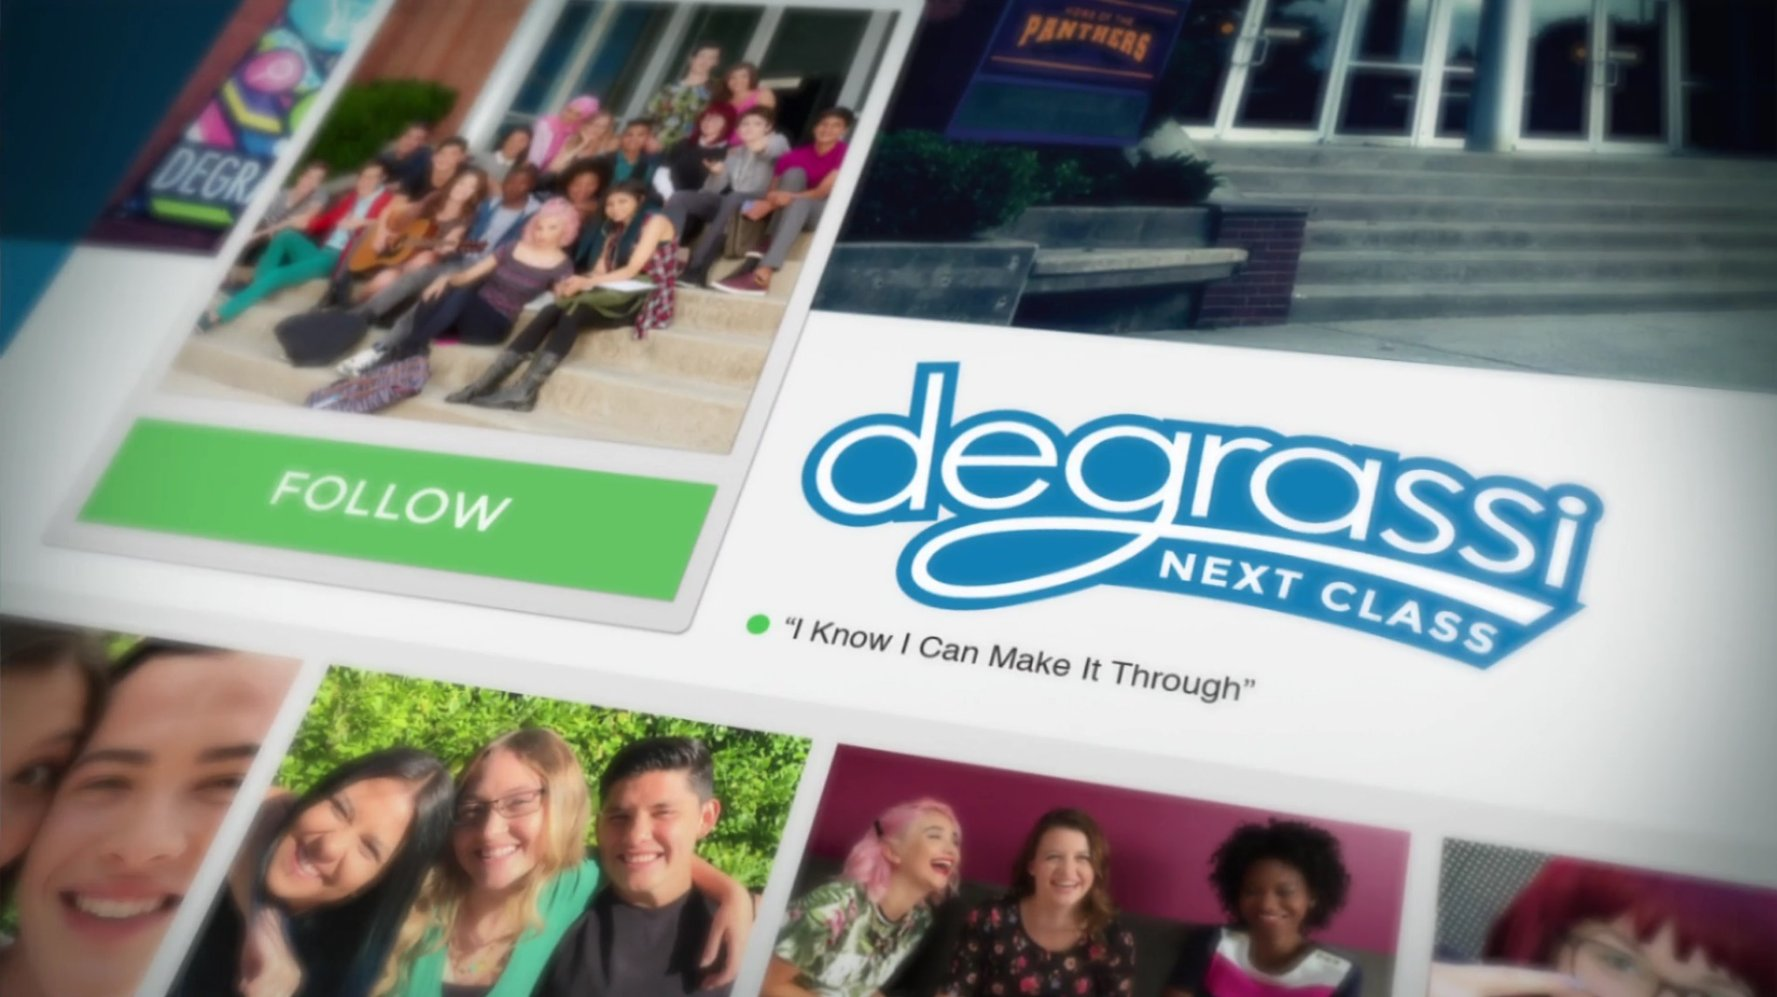 444 Degrassi: Next Class Season 3 1